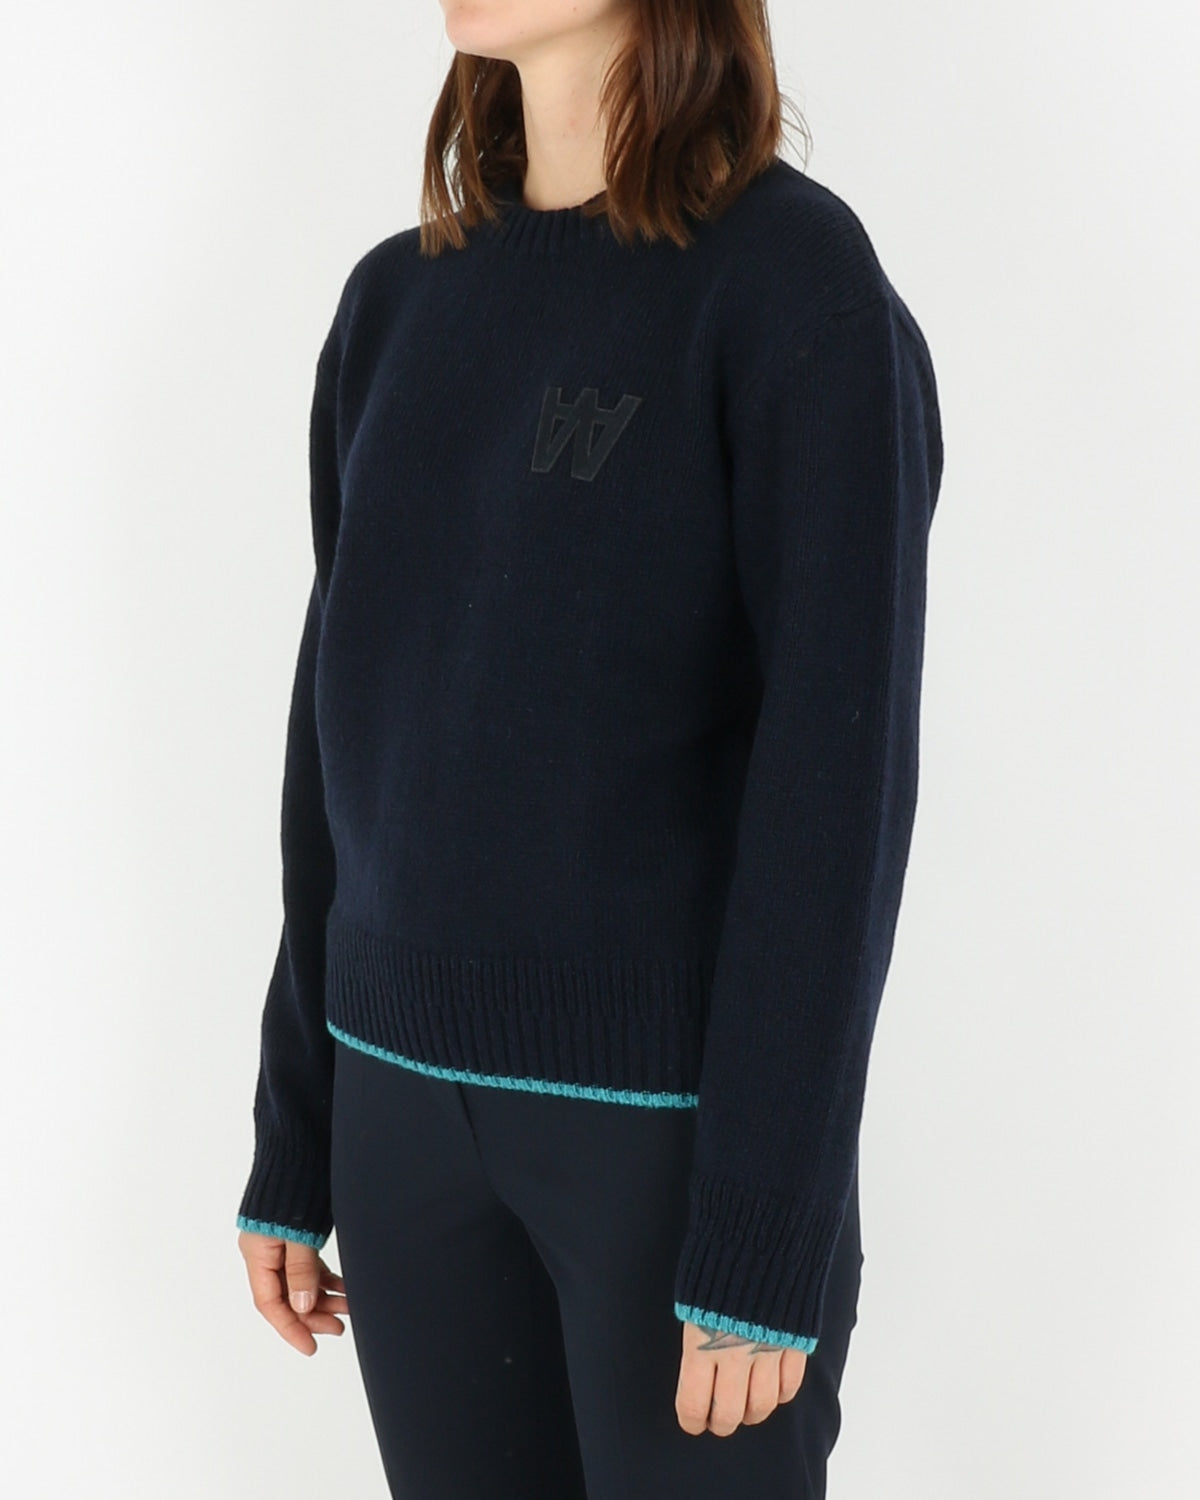 wood wood_anneli sweater_navy_view_2_4